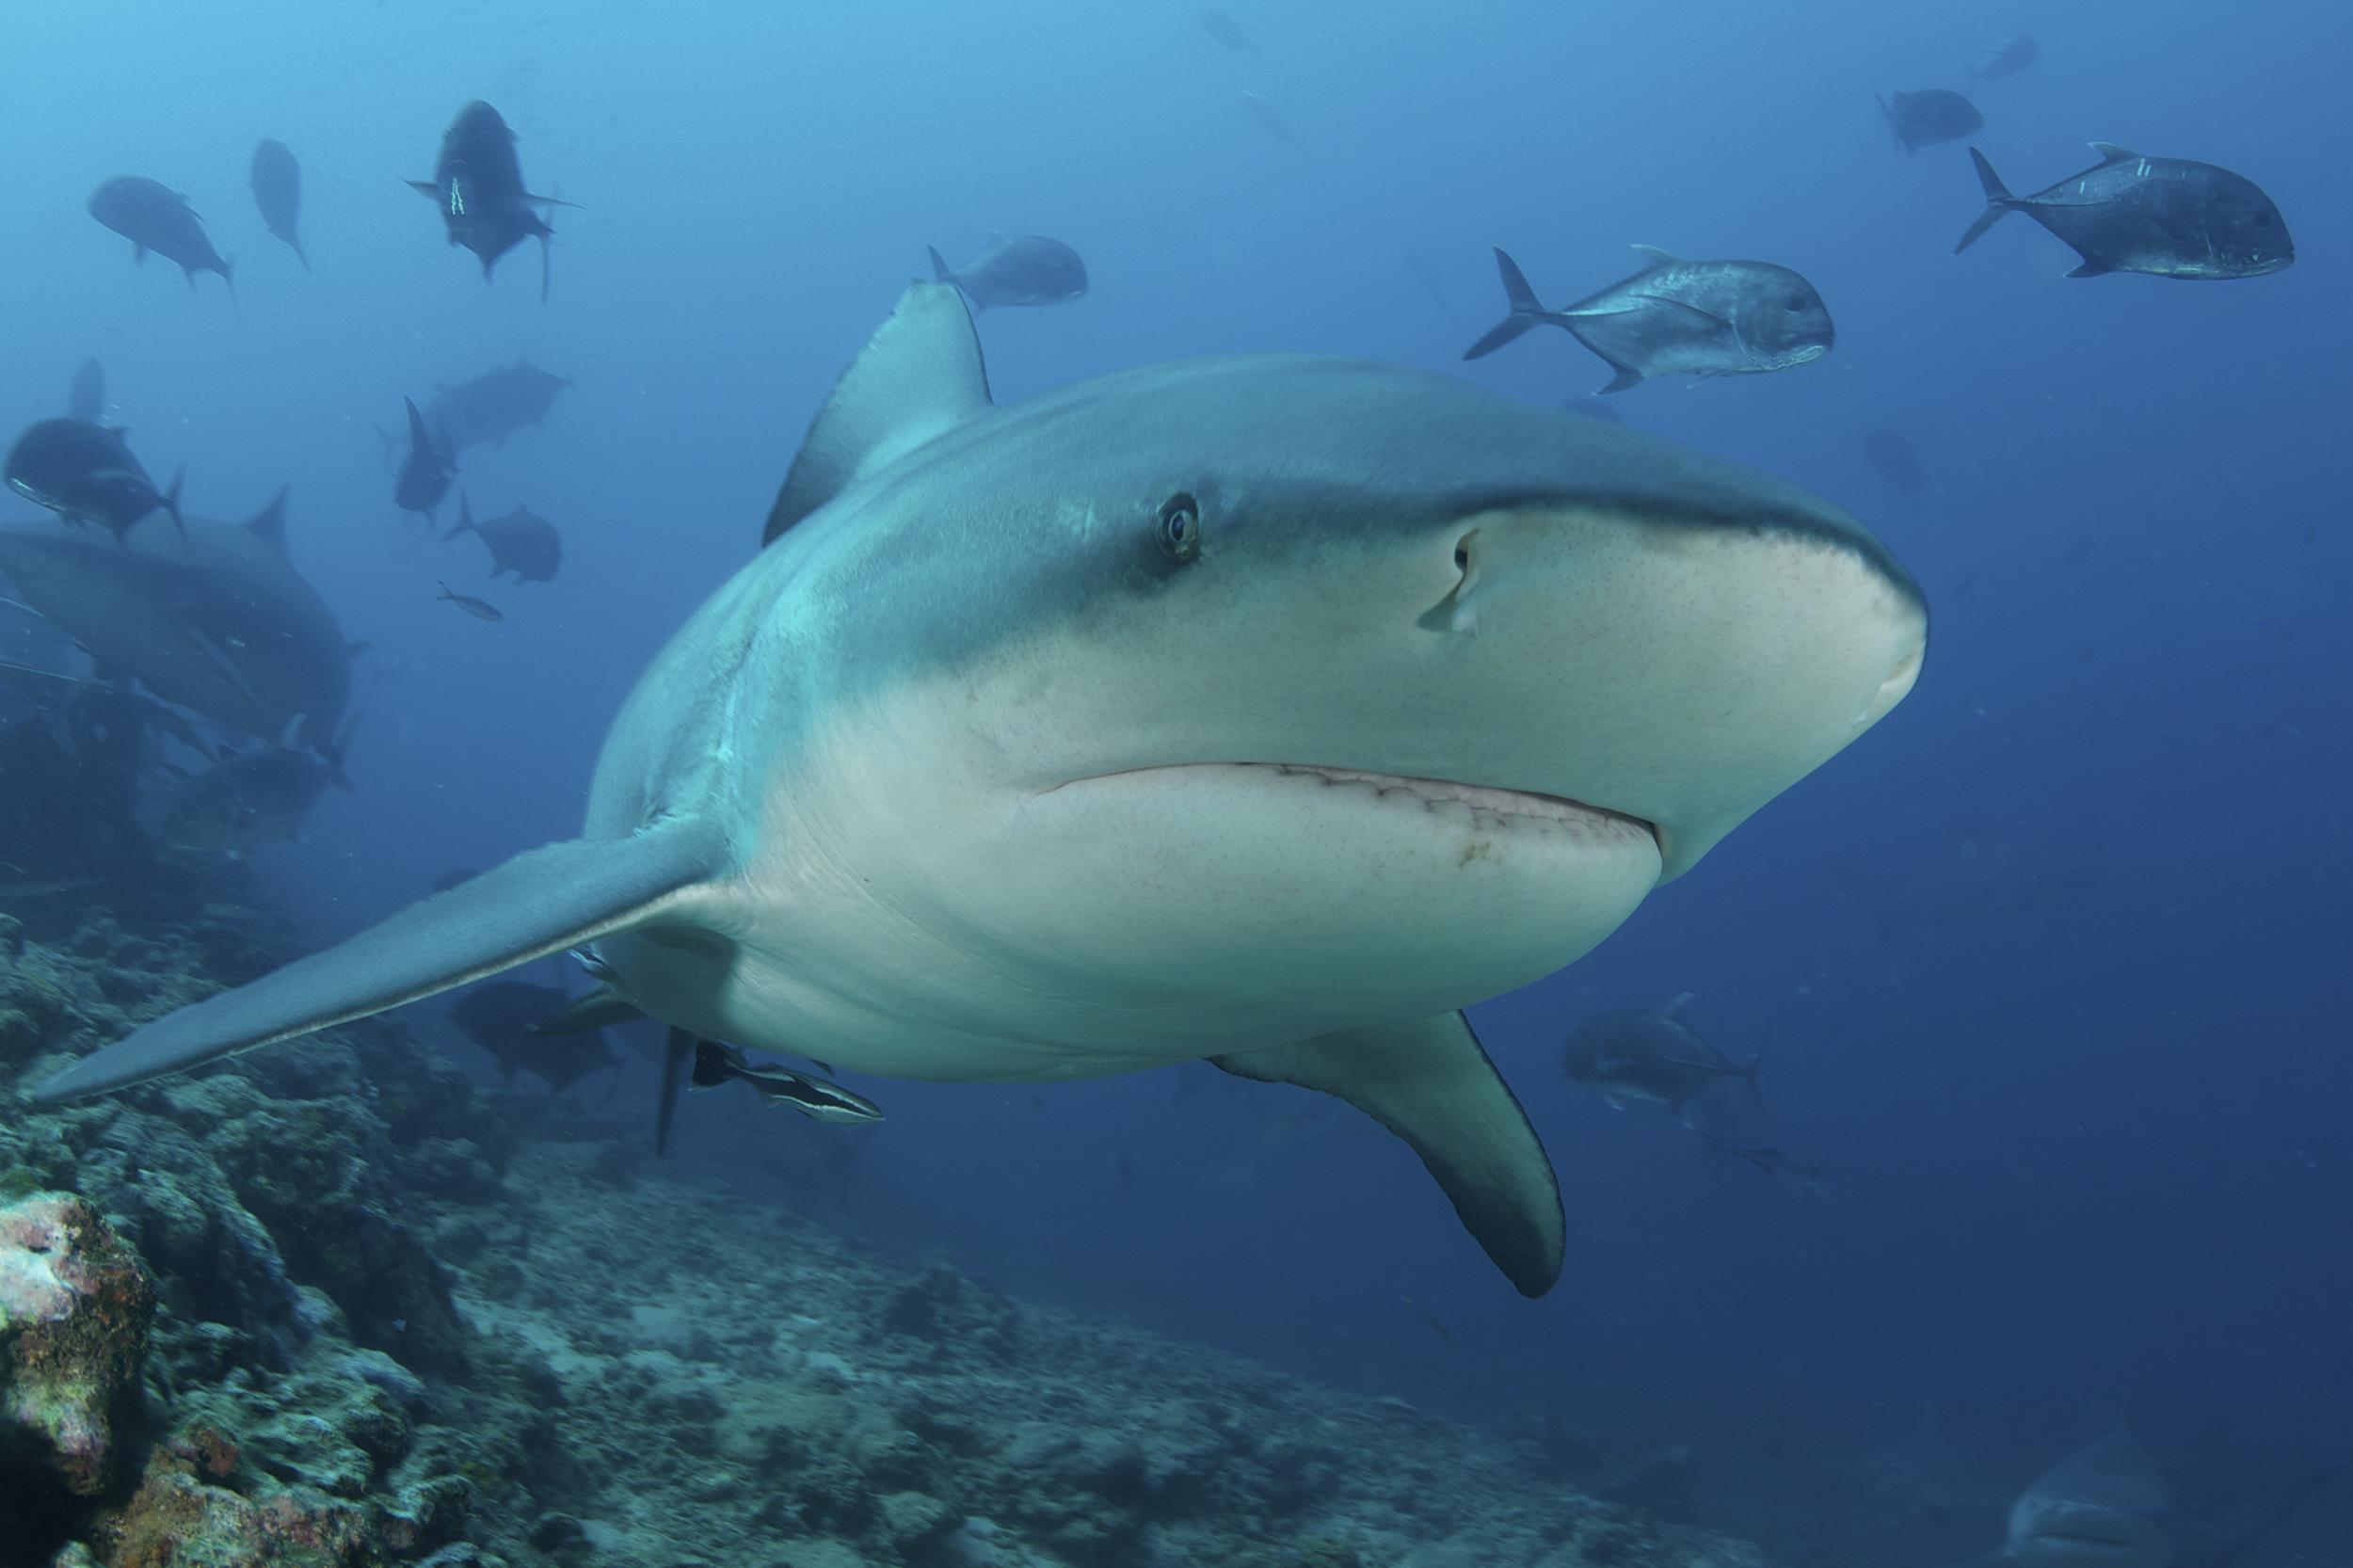 Shark Attack in a Lake? Extremely Rare, But It Happens